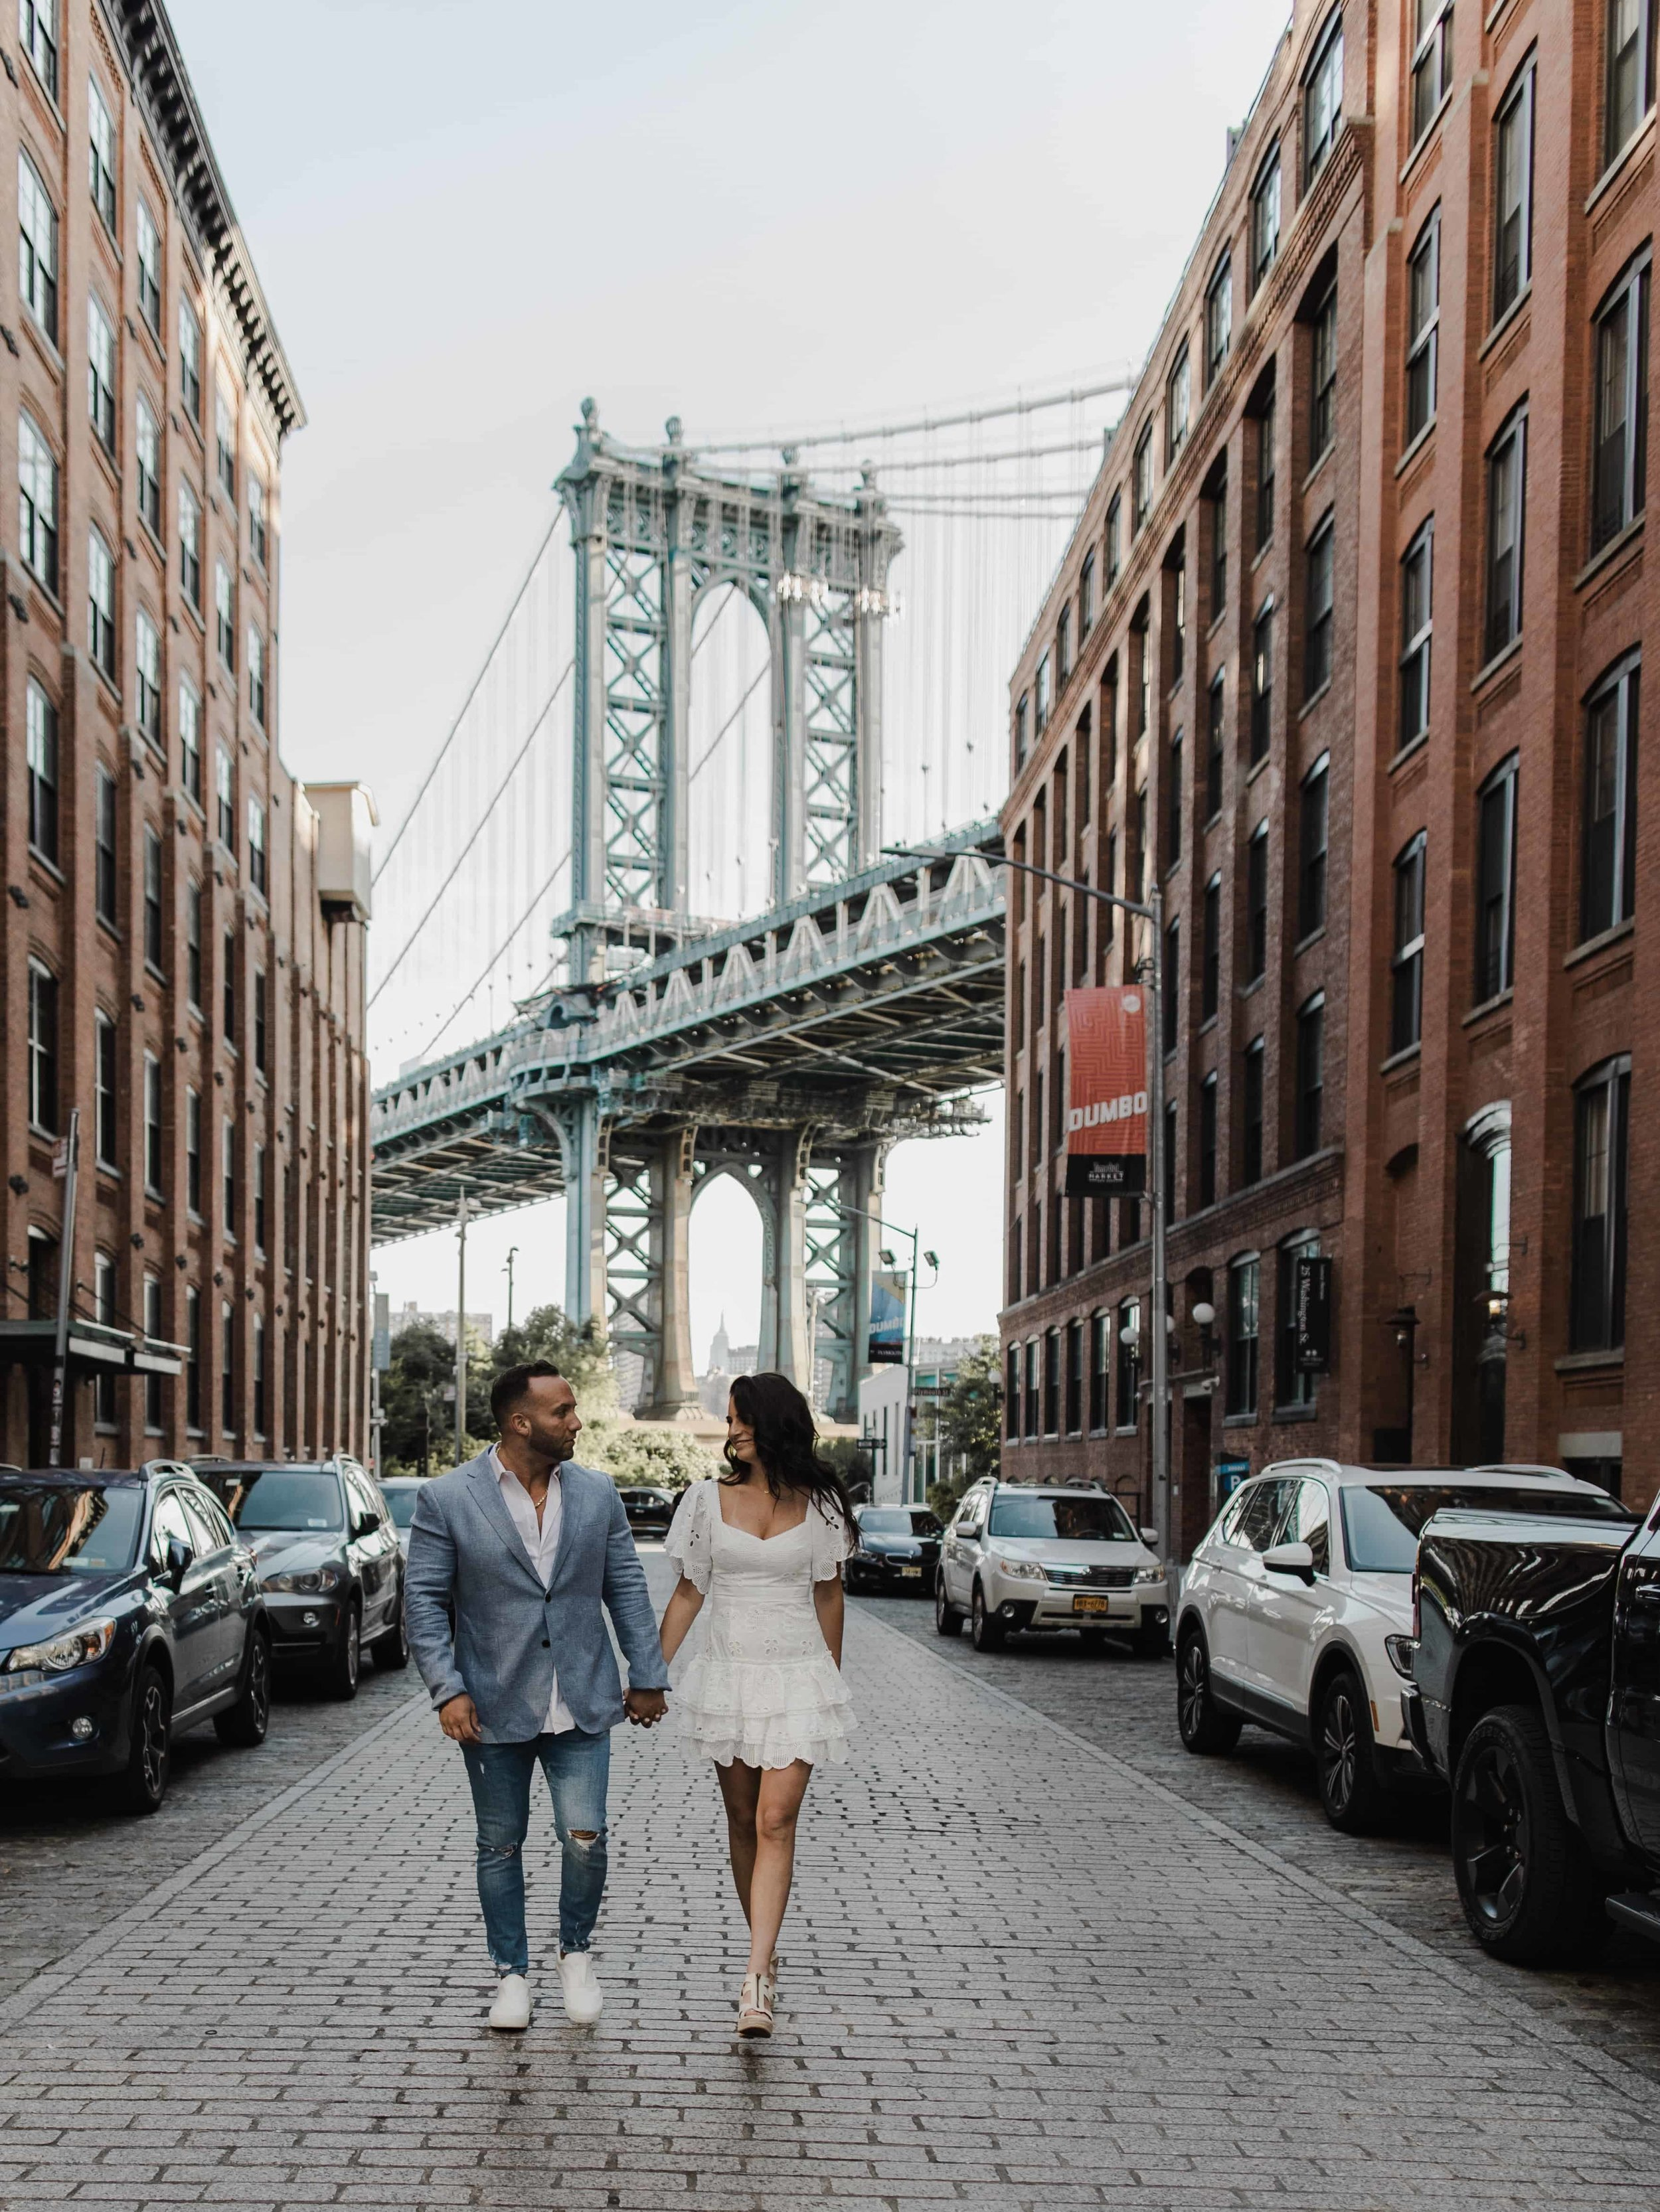 NYC COUPLES SESSIONS - Whether you're recently engaged, celebrating an anniversary, planning a big proposal, or really 'just because' (maybe you have no good photos of you two as a couple... we've all been there), I'm here to help capture your personality as a couple.